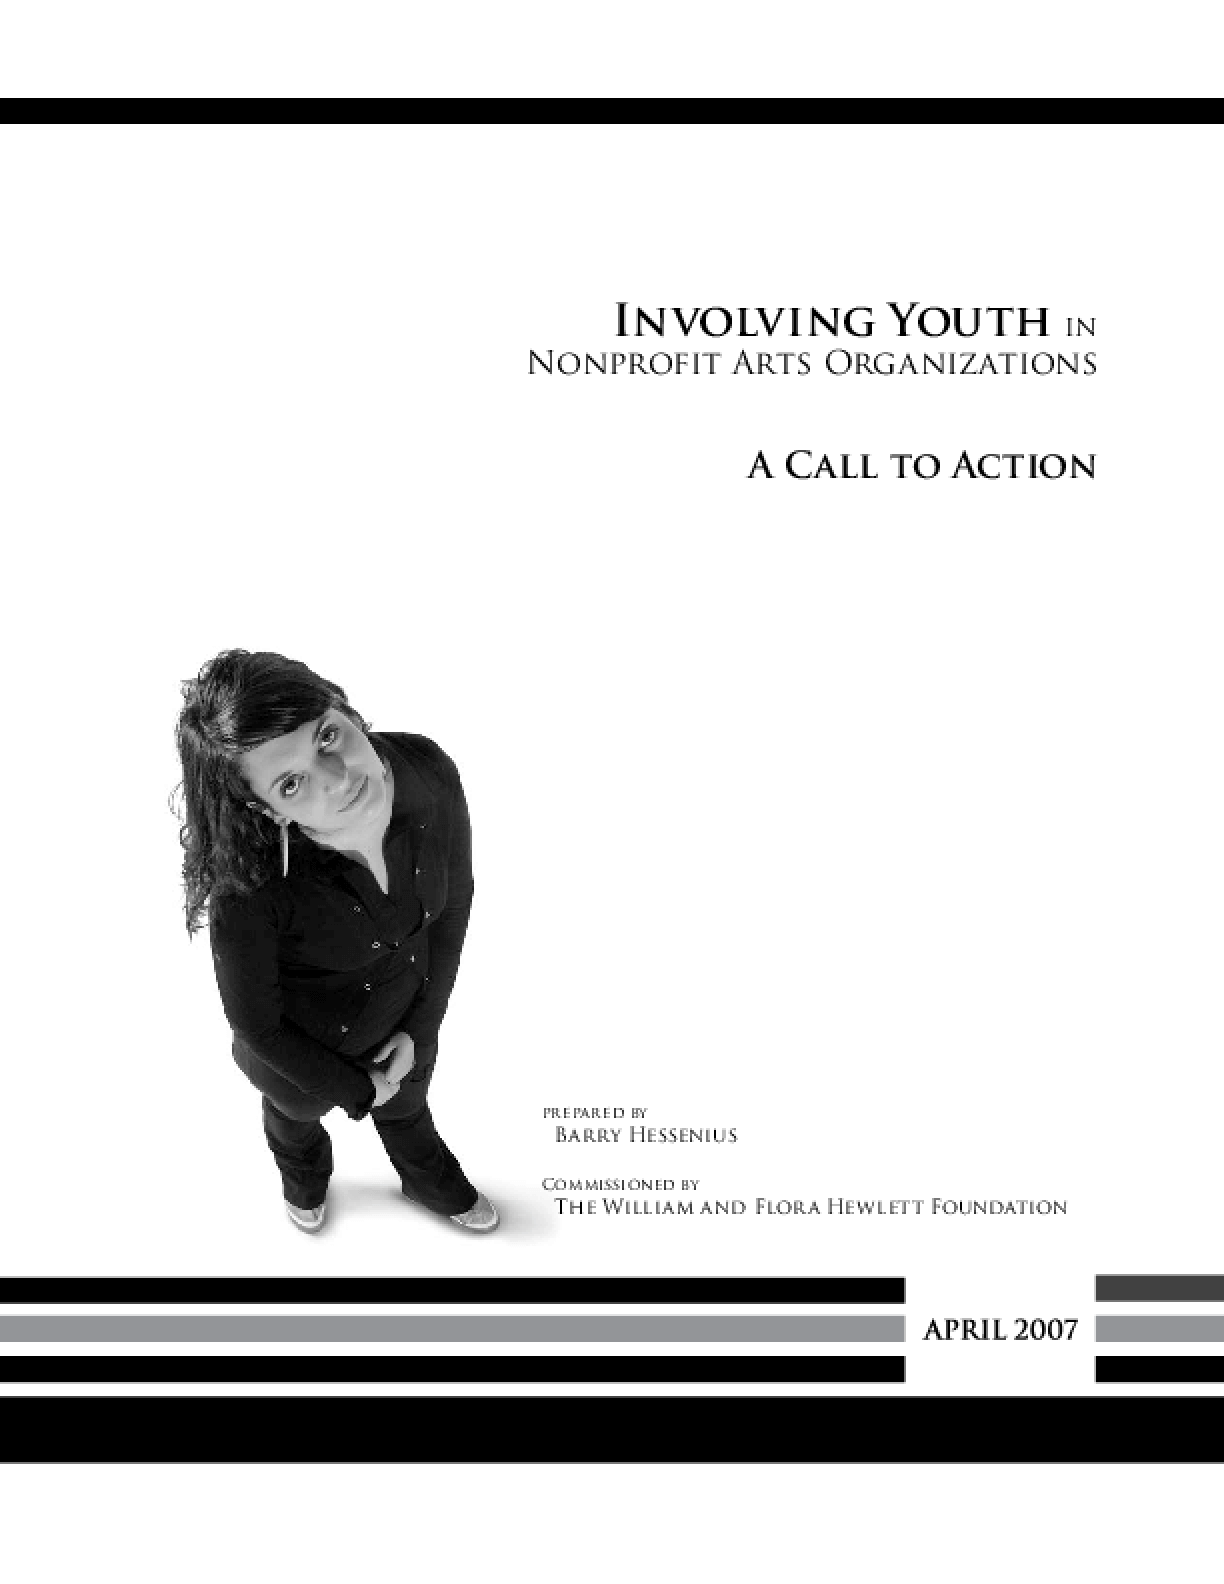 Involving Youth in Nonprofit Arts Organizations: A Call to Action